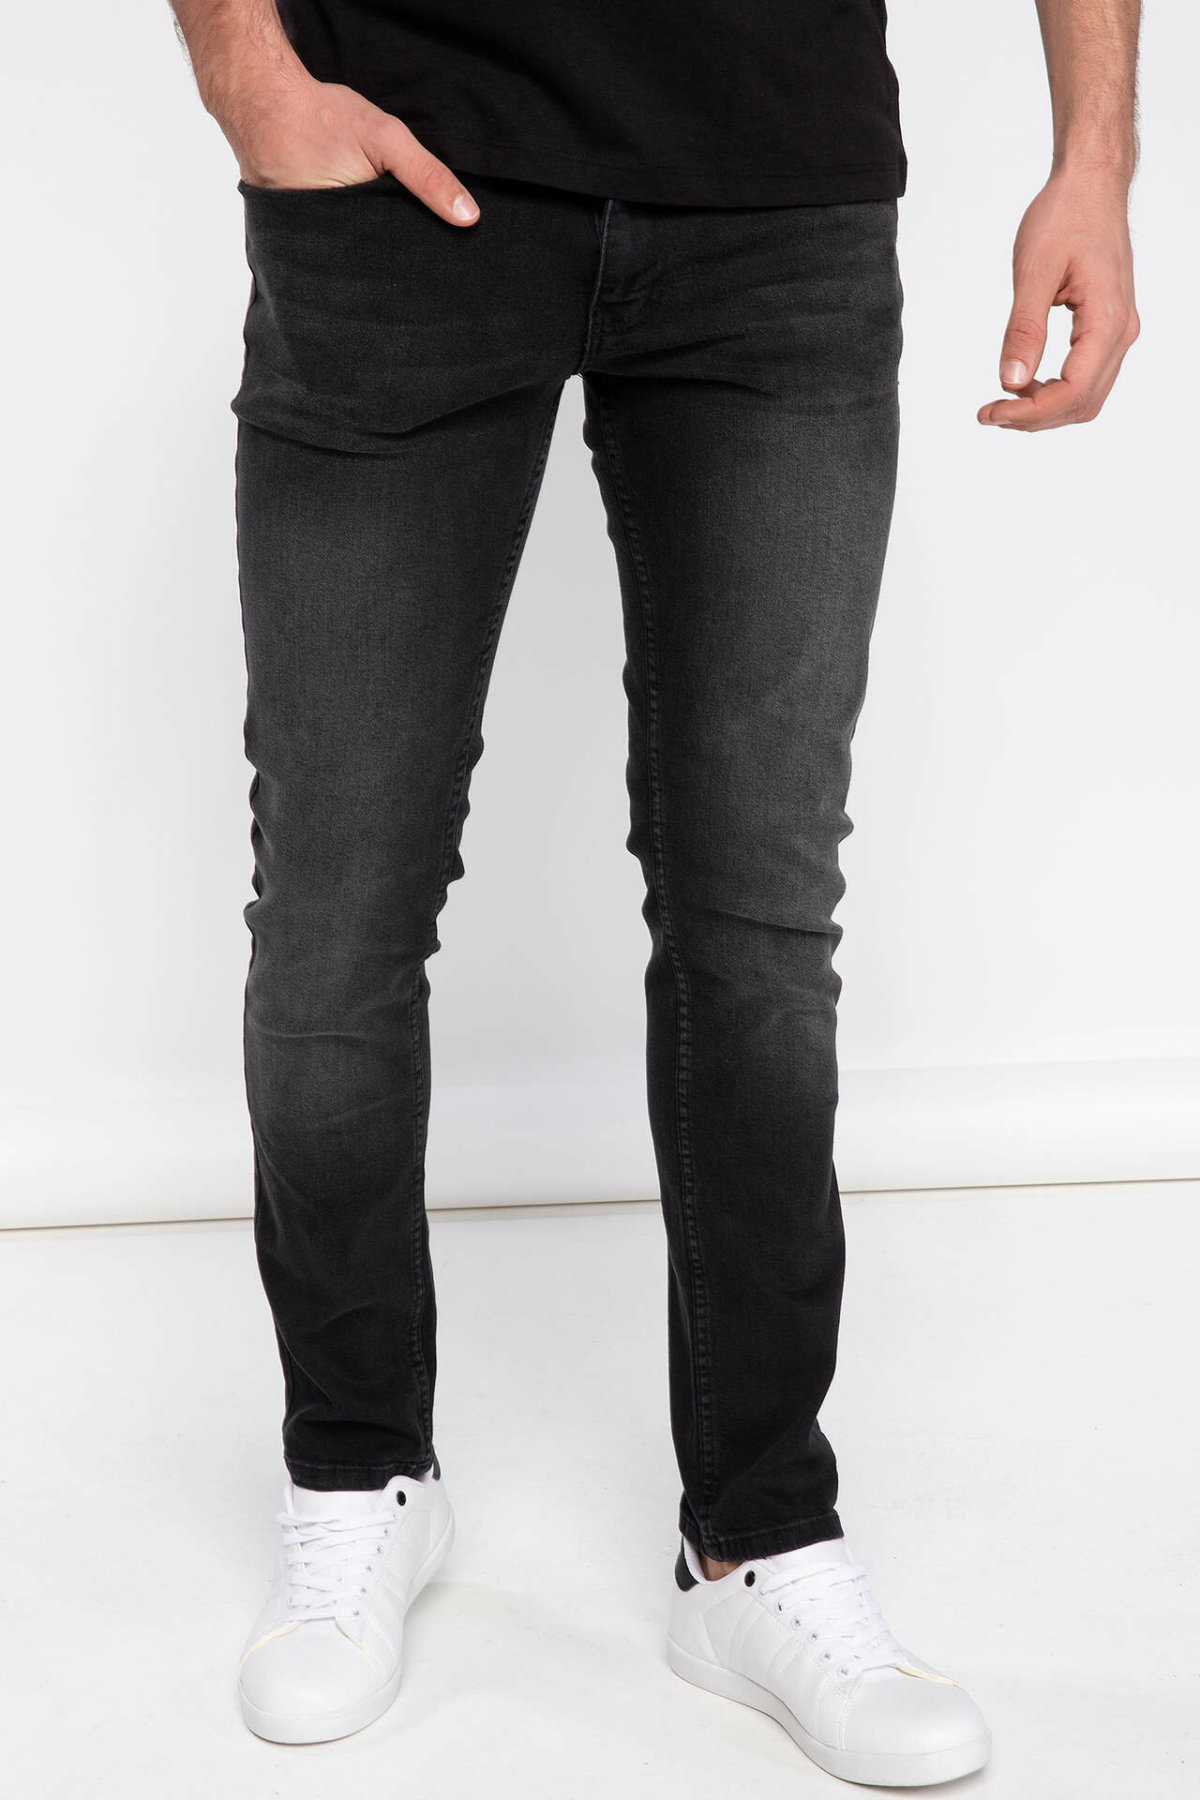 DeFacto Man Spring Black Denim Jeans Men Casual Skinny Denim Pants Male Mid-waist Denim Trousers-K4108AZ19SP